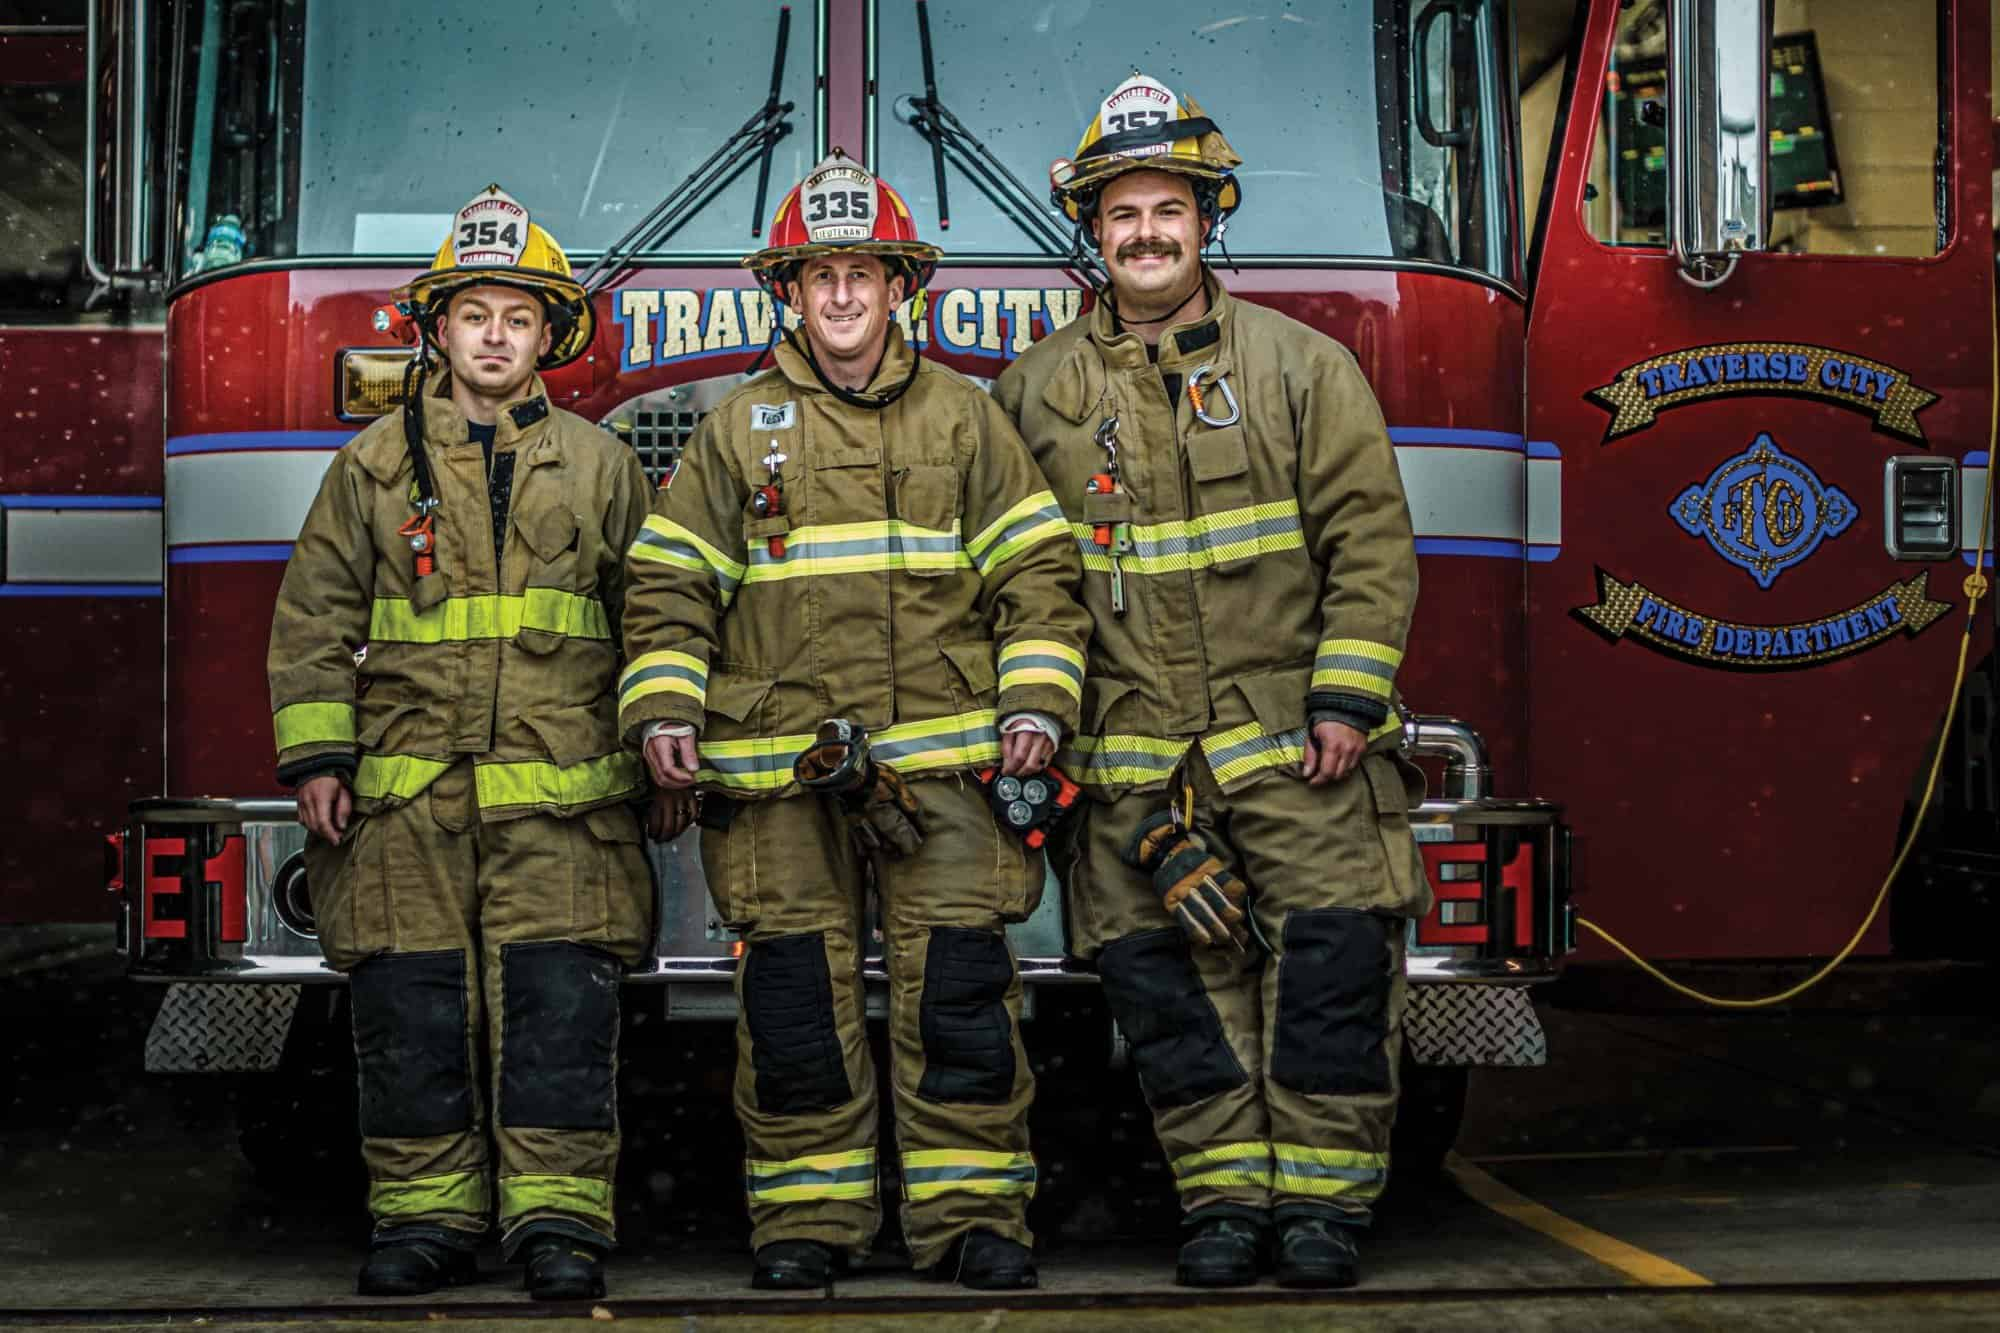 Three Traverse City firefighters in front of a firetruck.